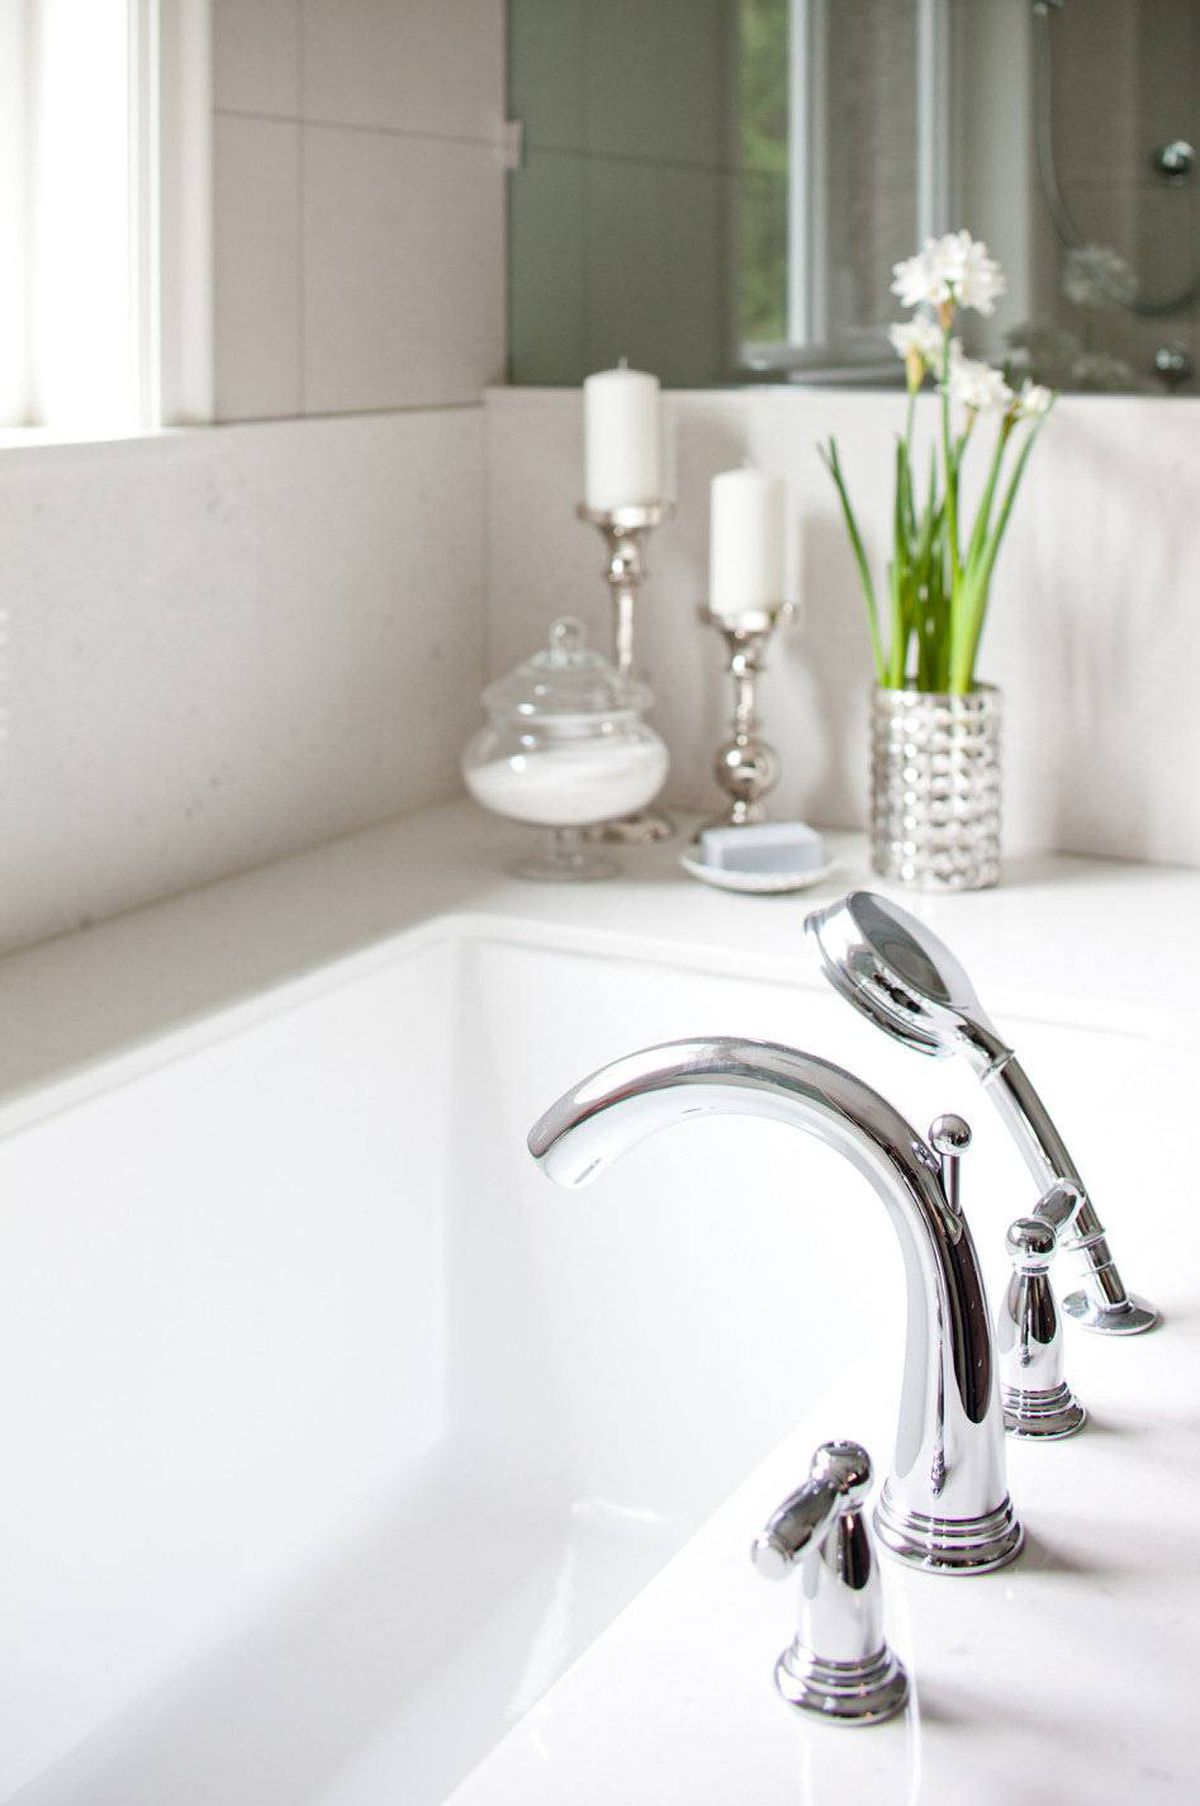 The room design is fairly modern in an otherwise traditionally-styled home. As a counterbalance, traditional faucets and hardware were chosen.